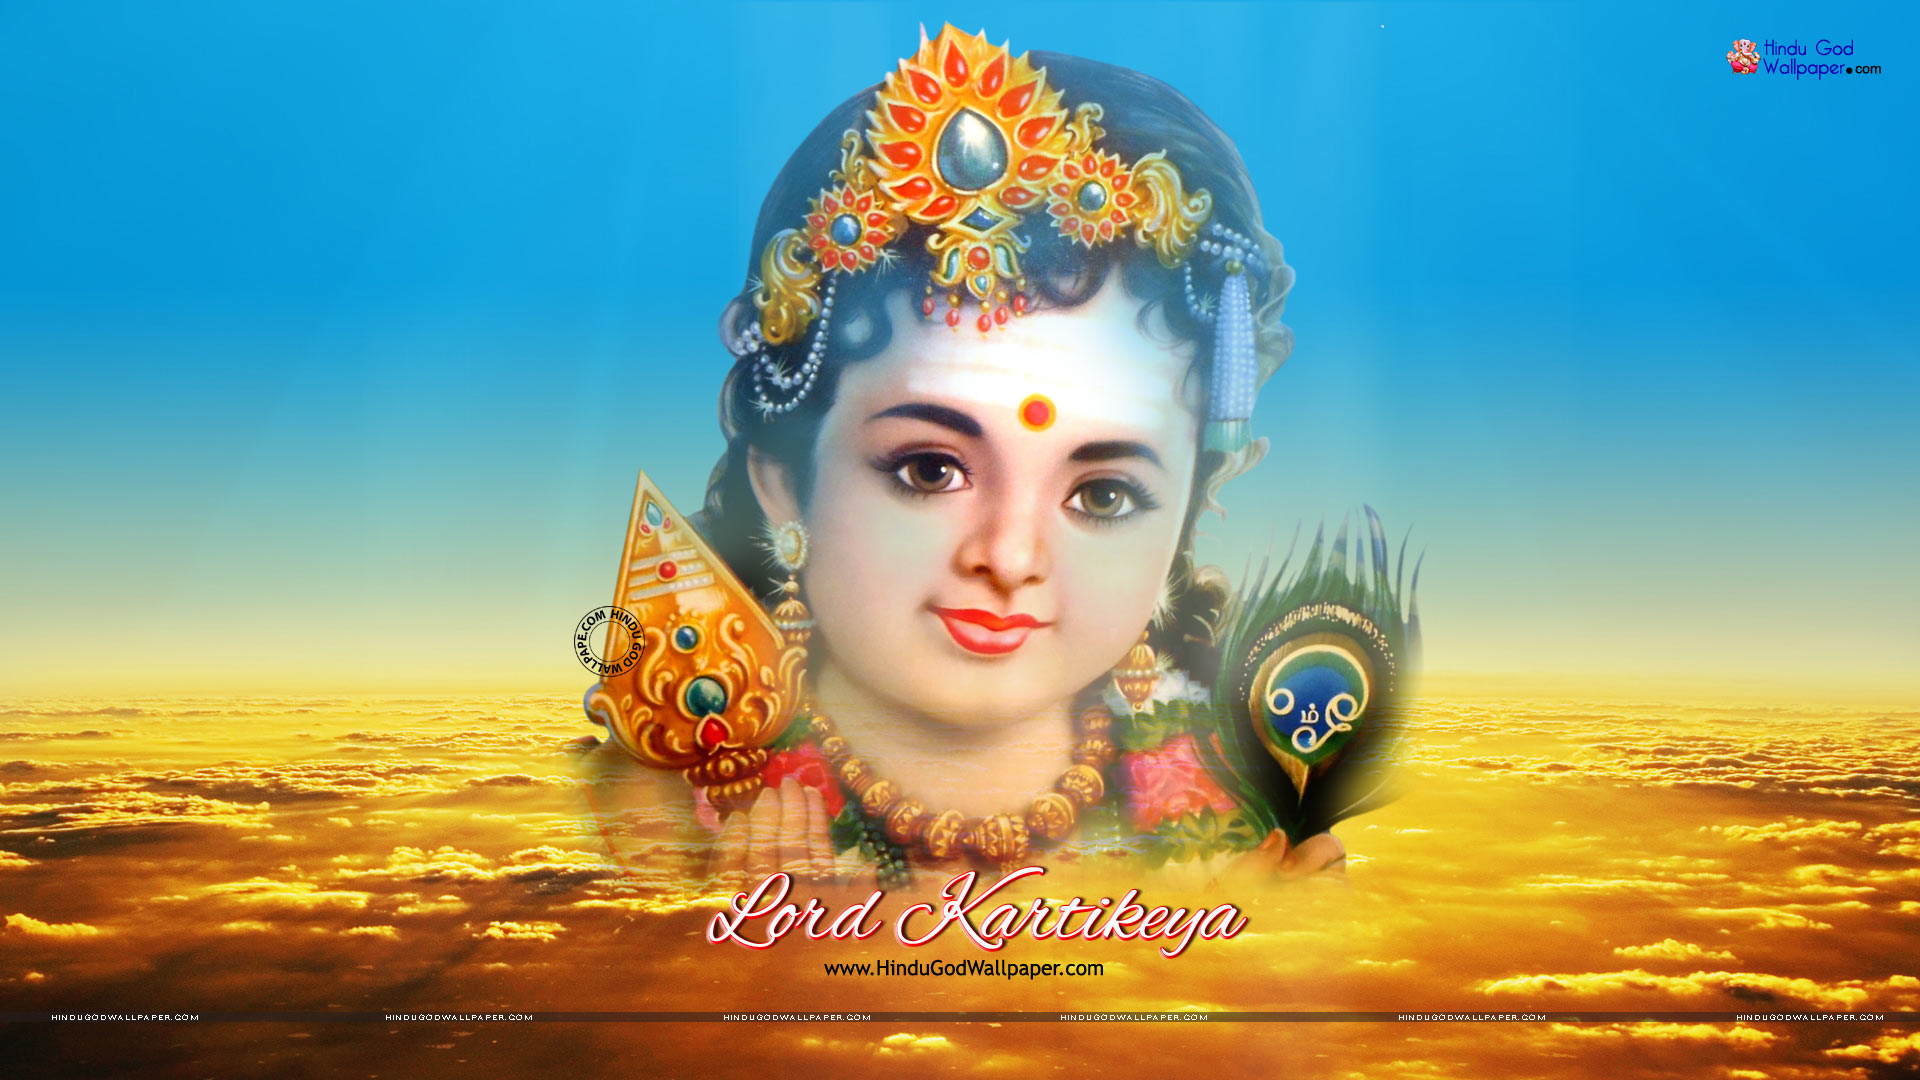 Lord Kartikeya Hd Wallpaper